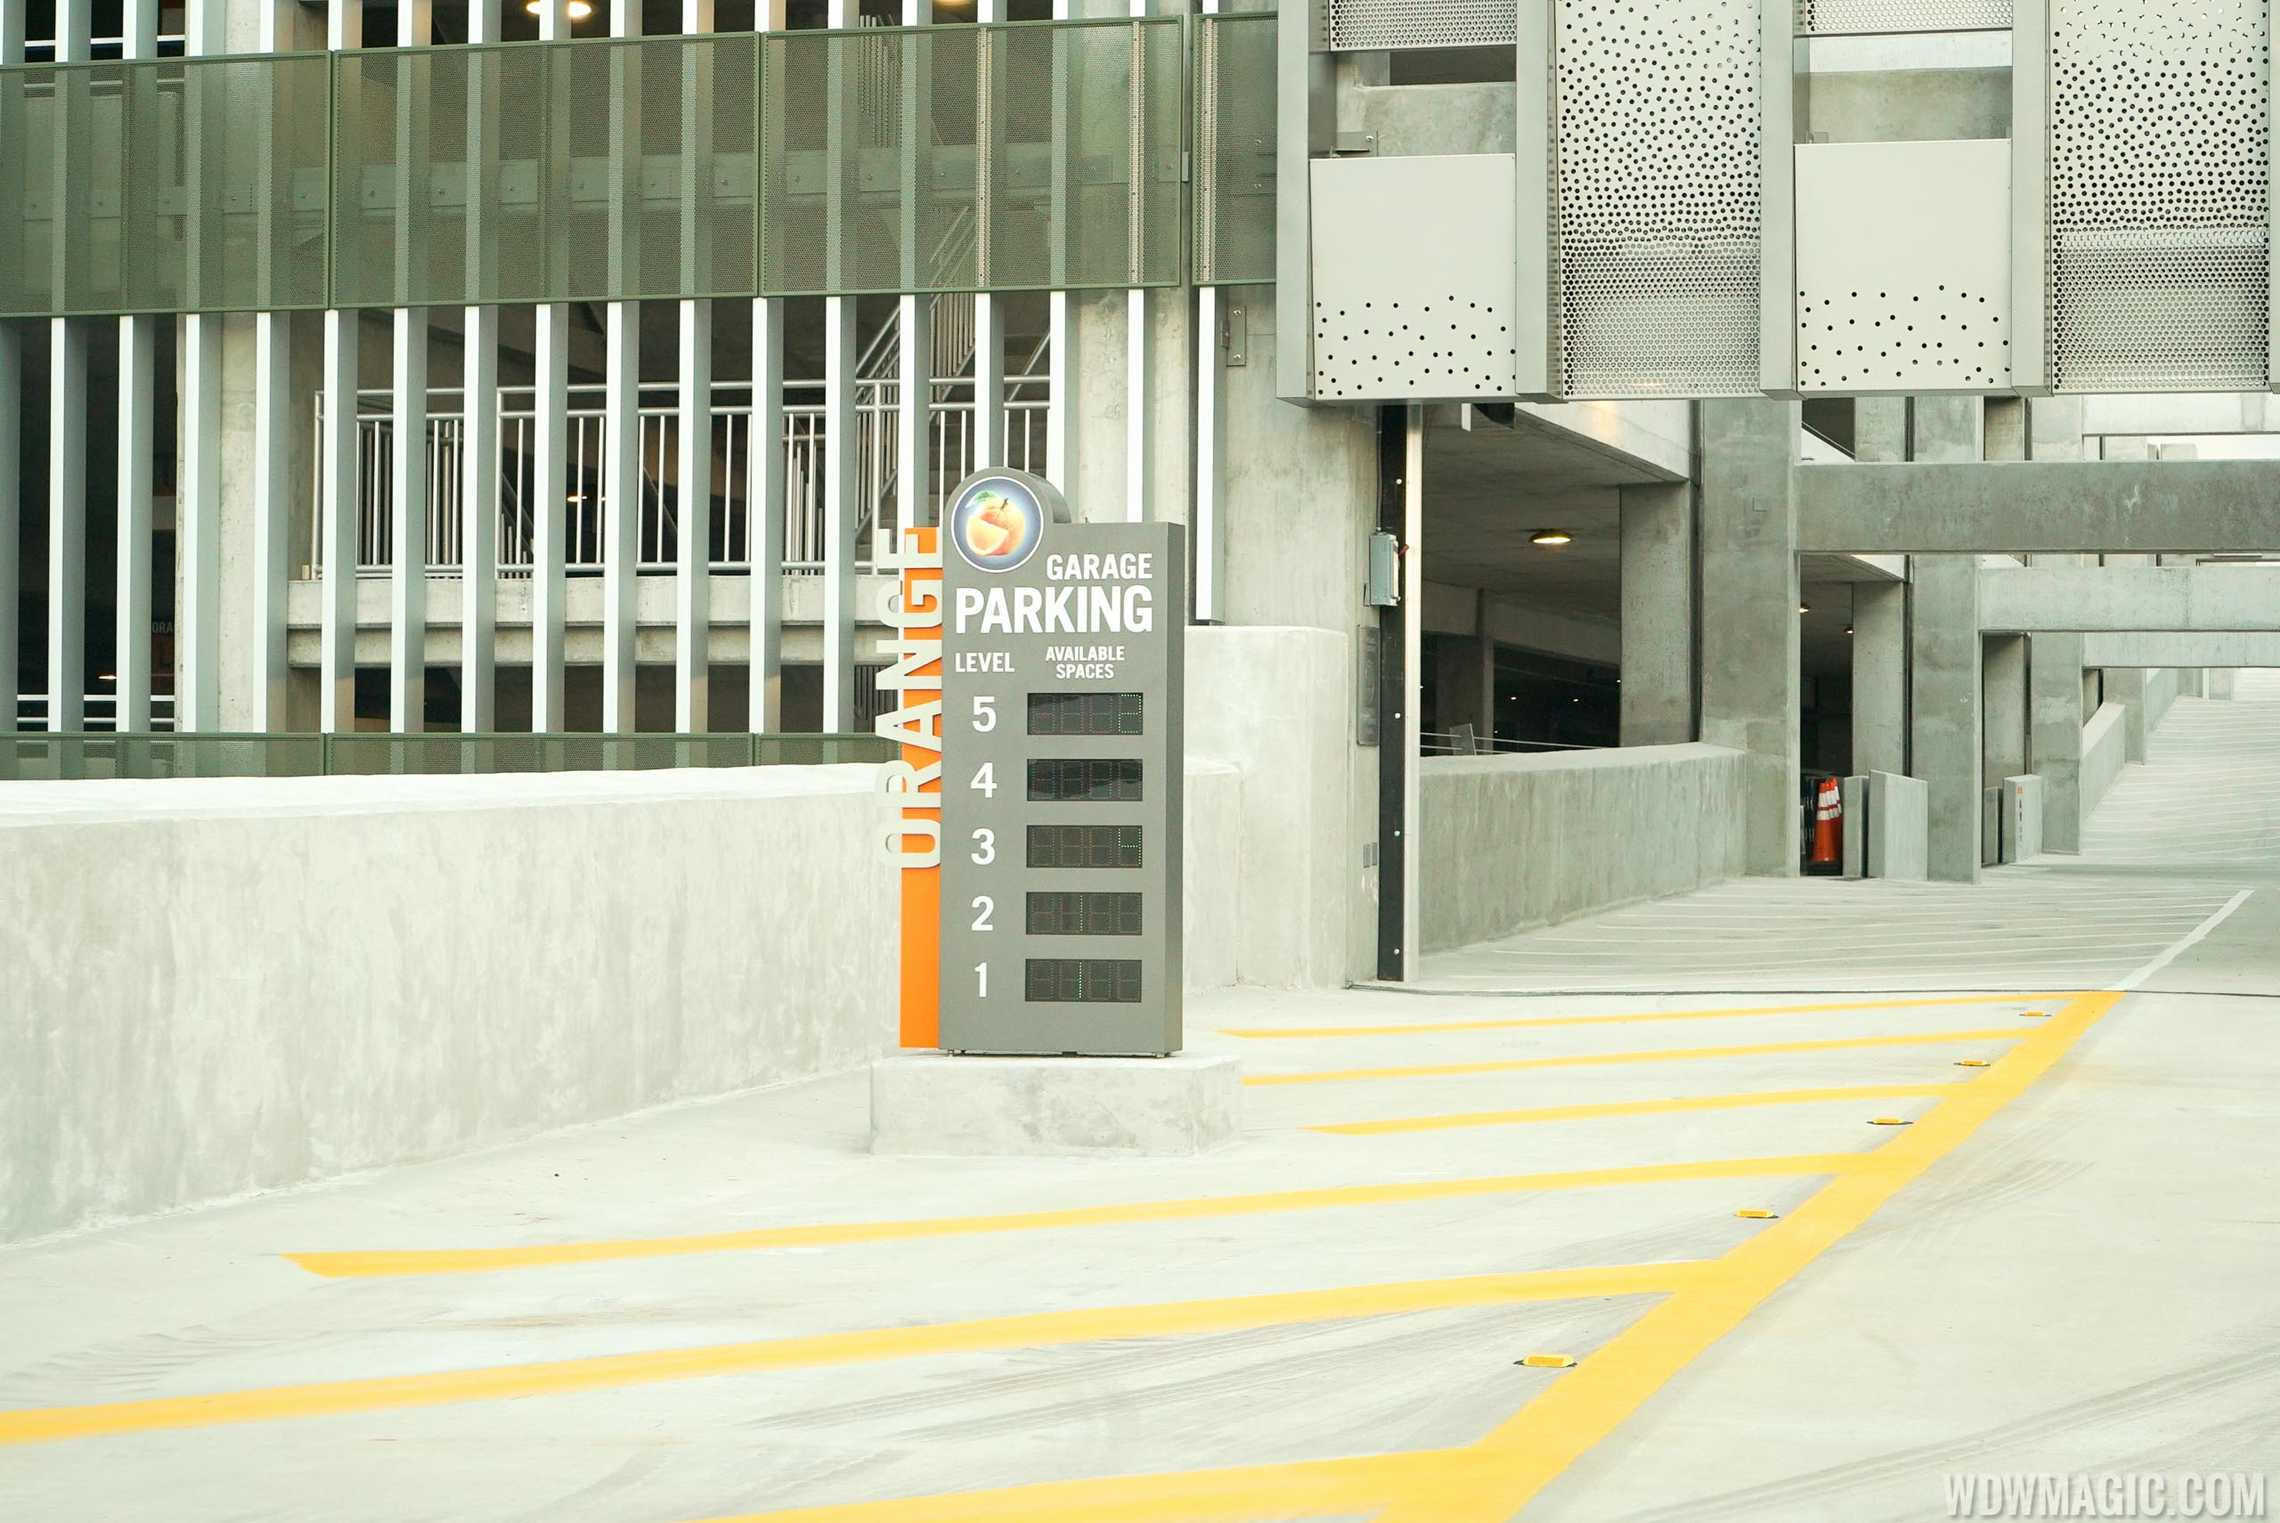 Entrance to L3 of the Orange Parking Garage from the flyover